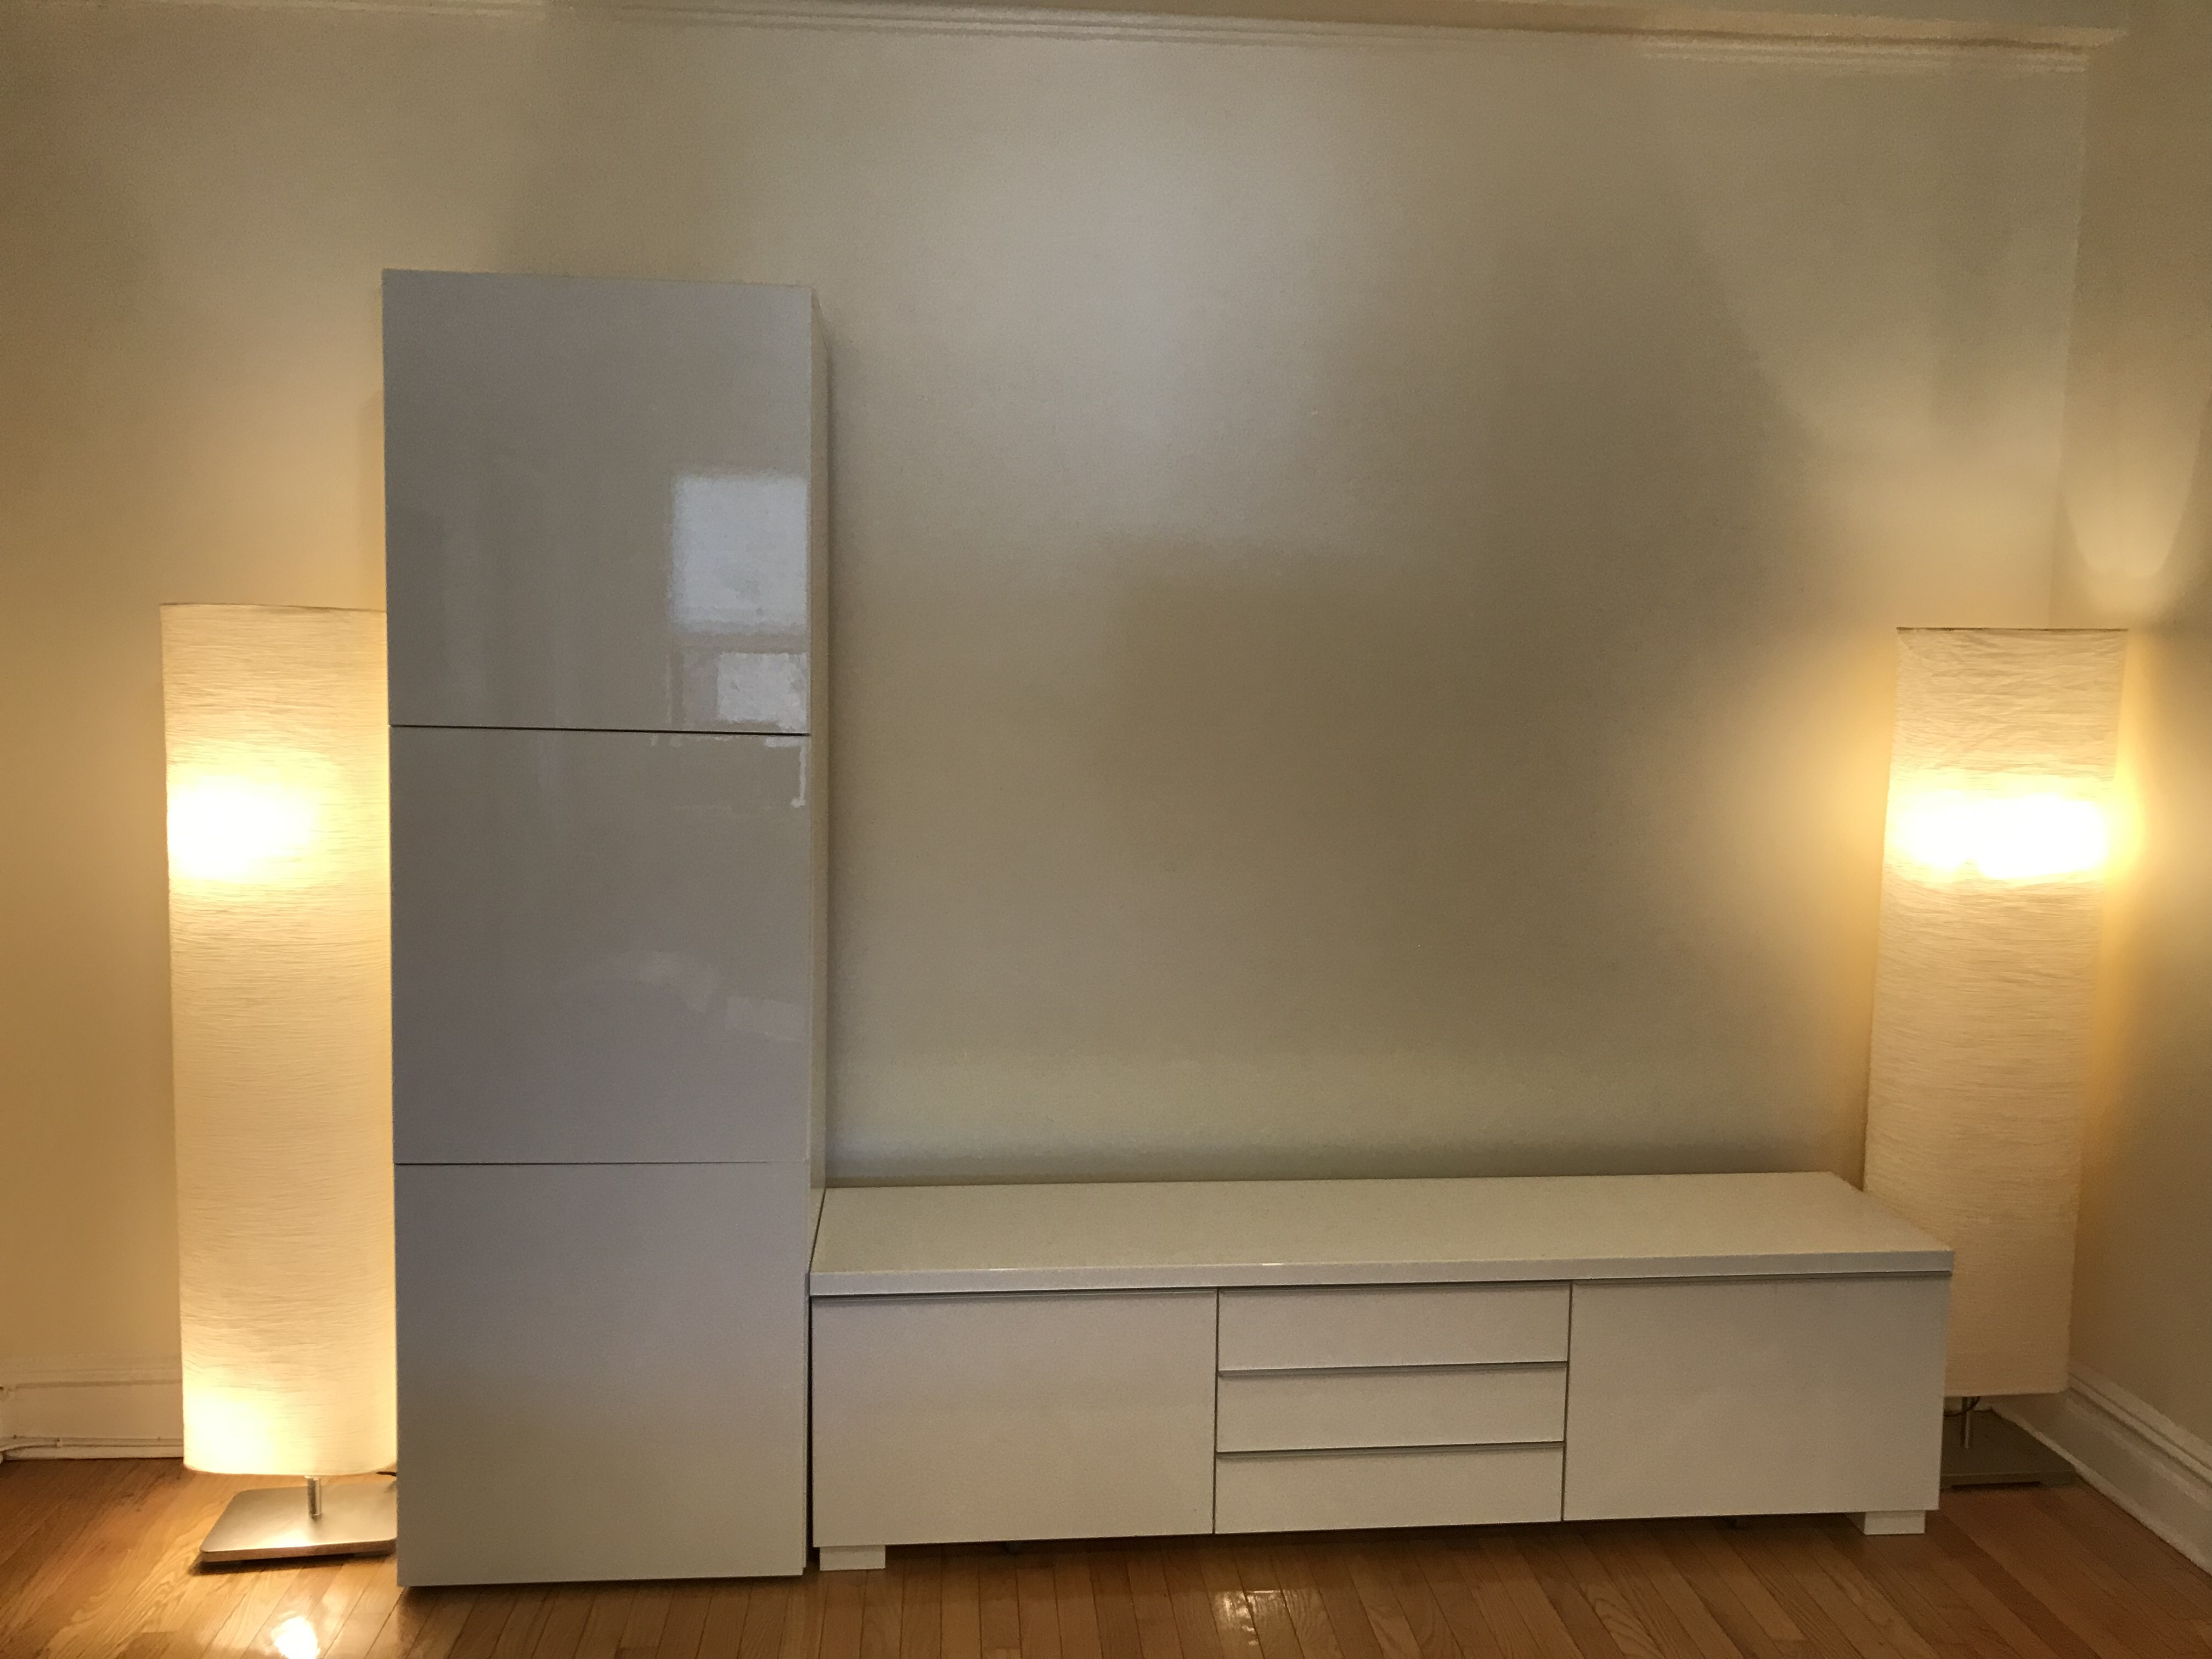 Ikea Besta TV/Media Stand